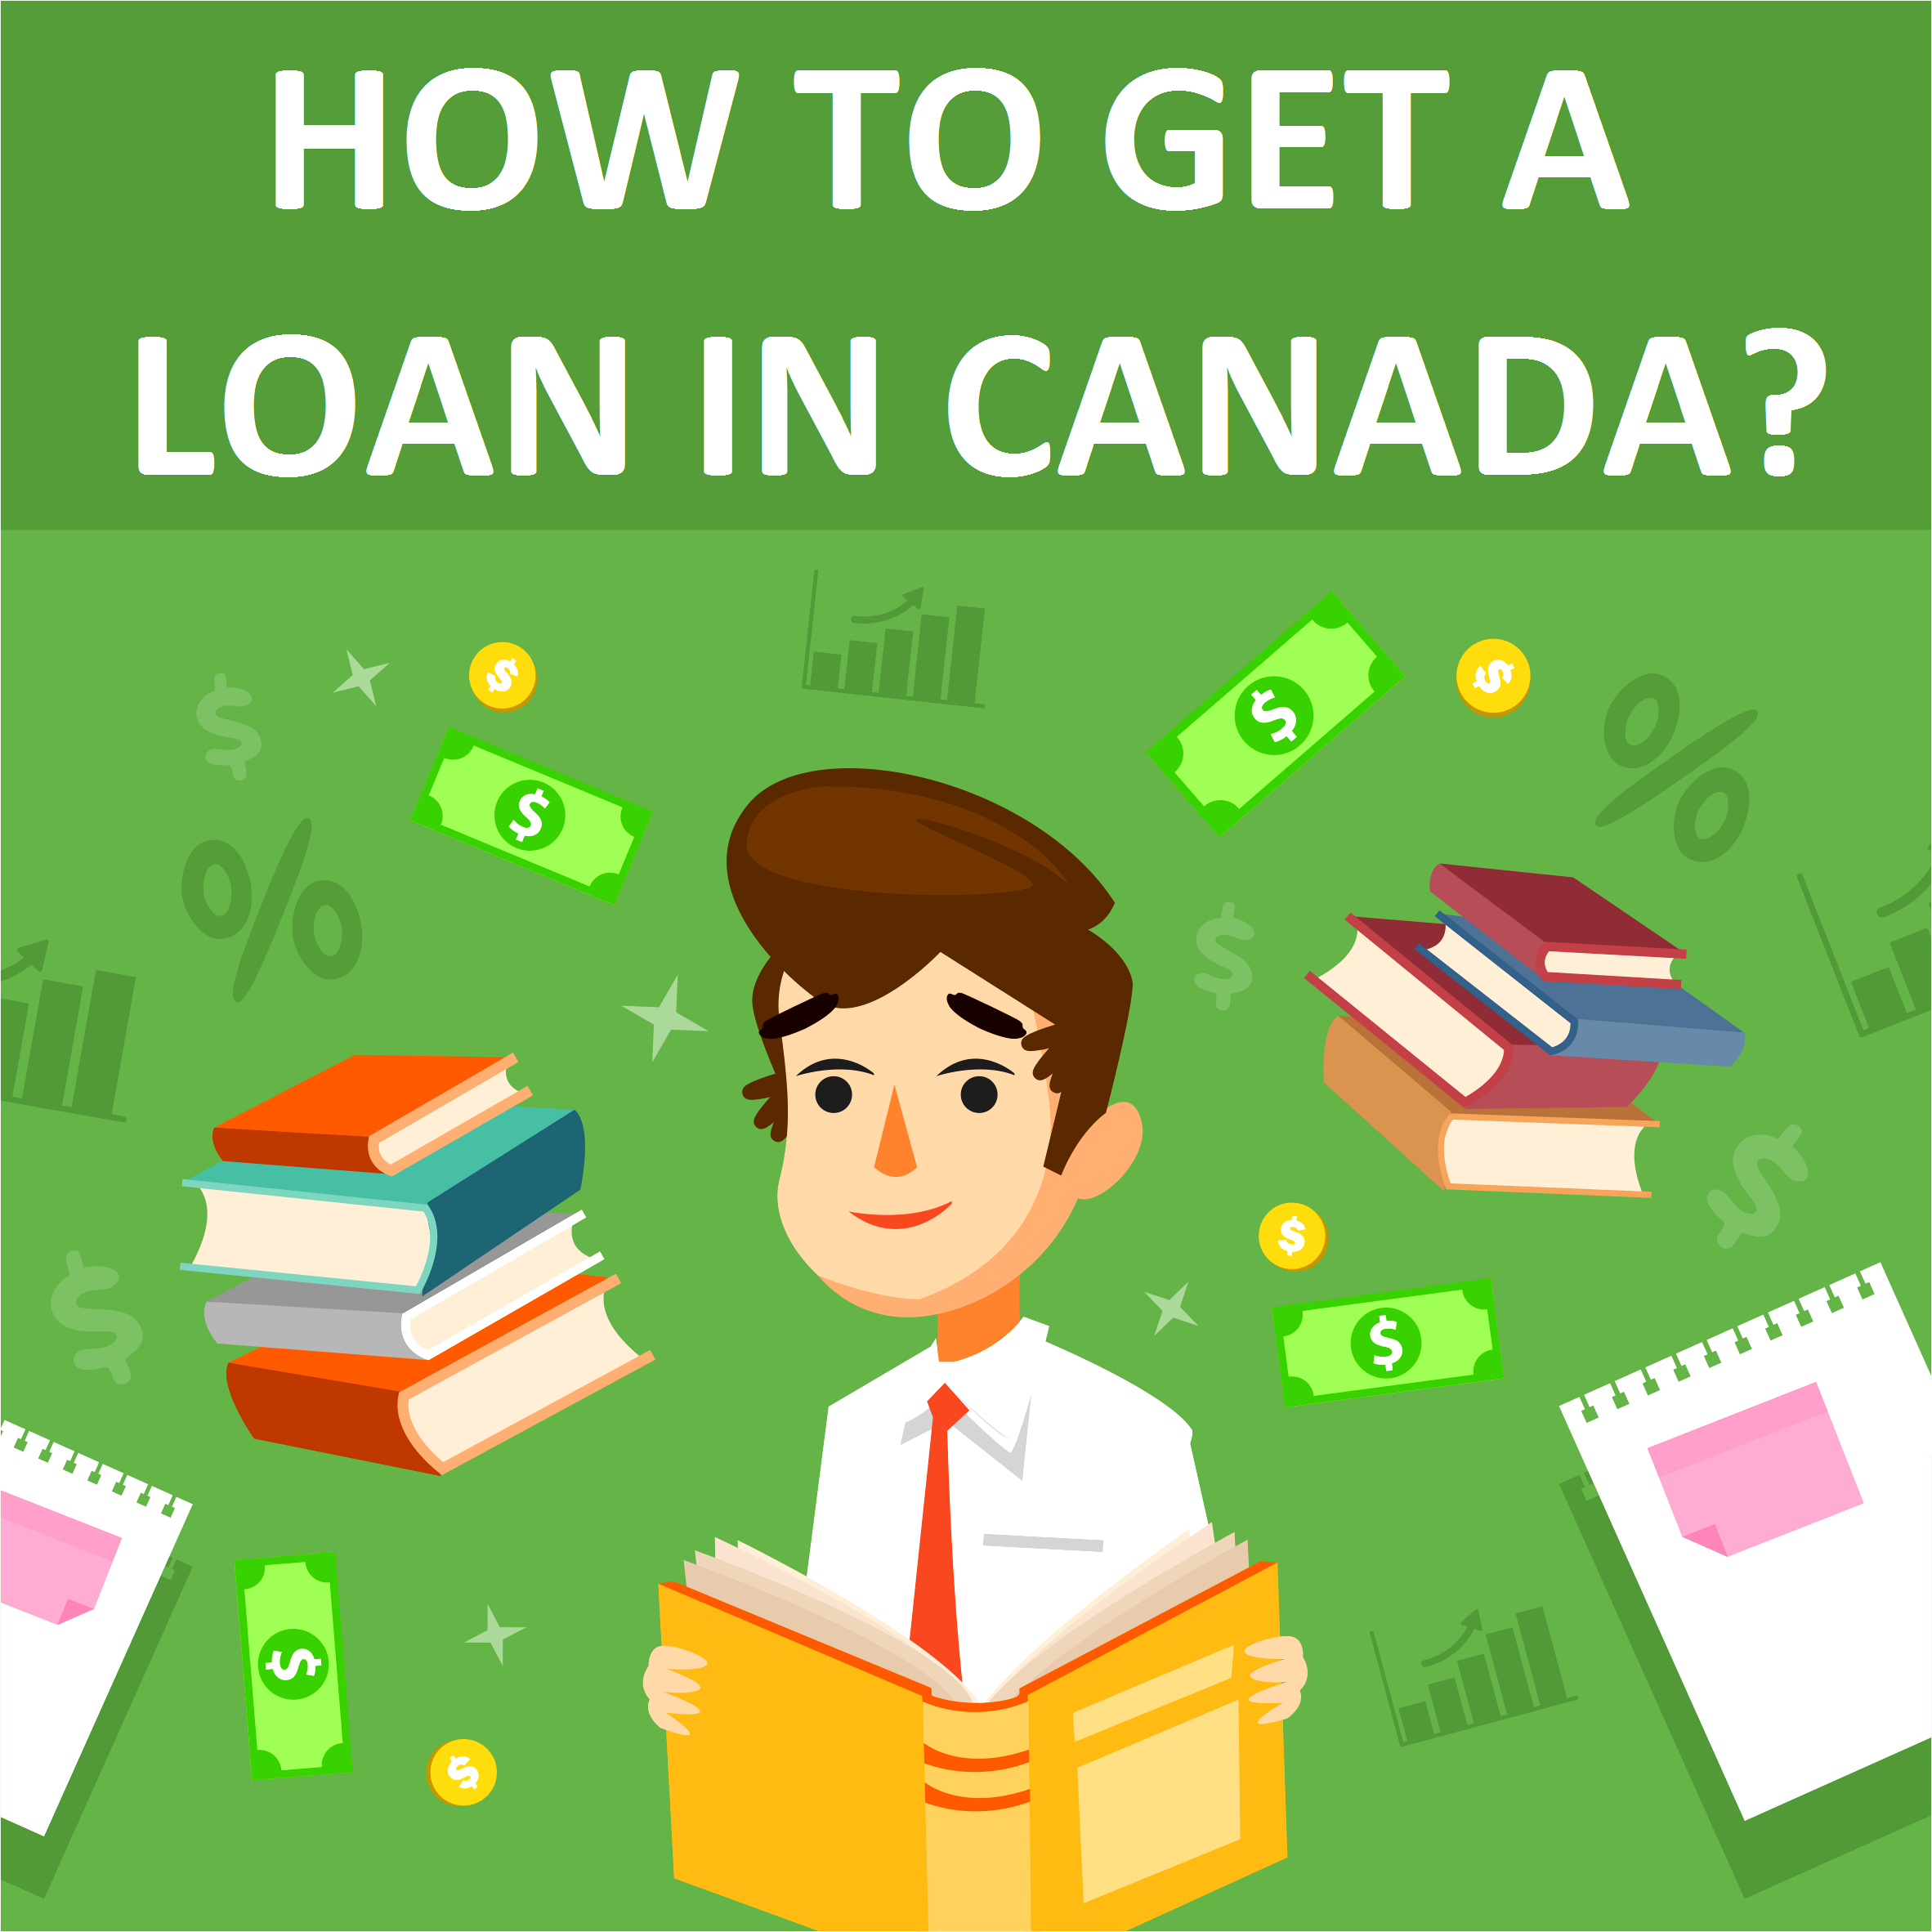 How To Get A Loan In Canada Now?